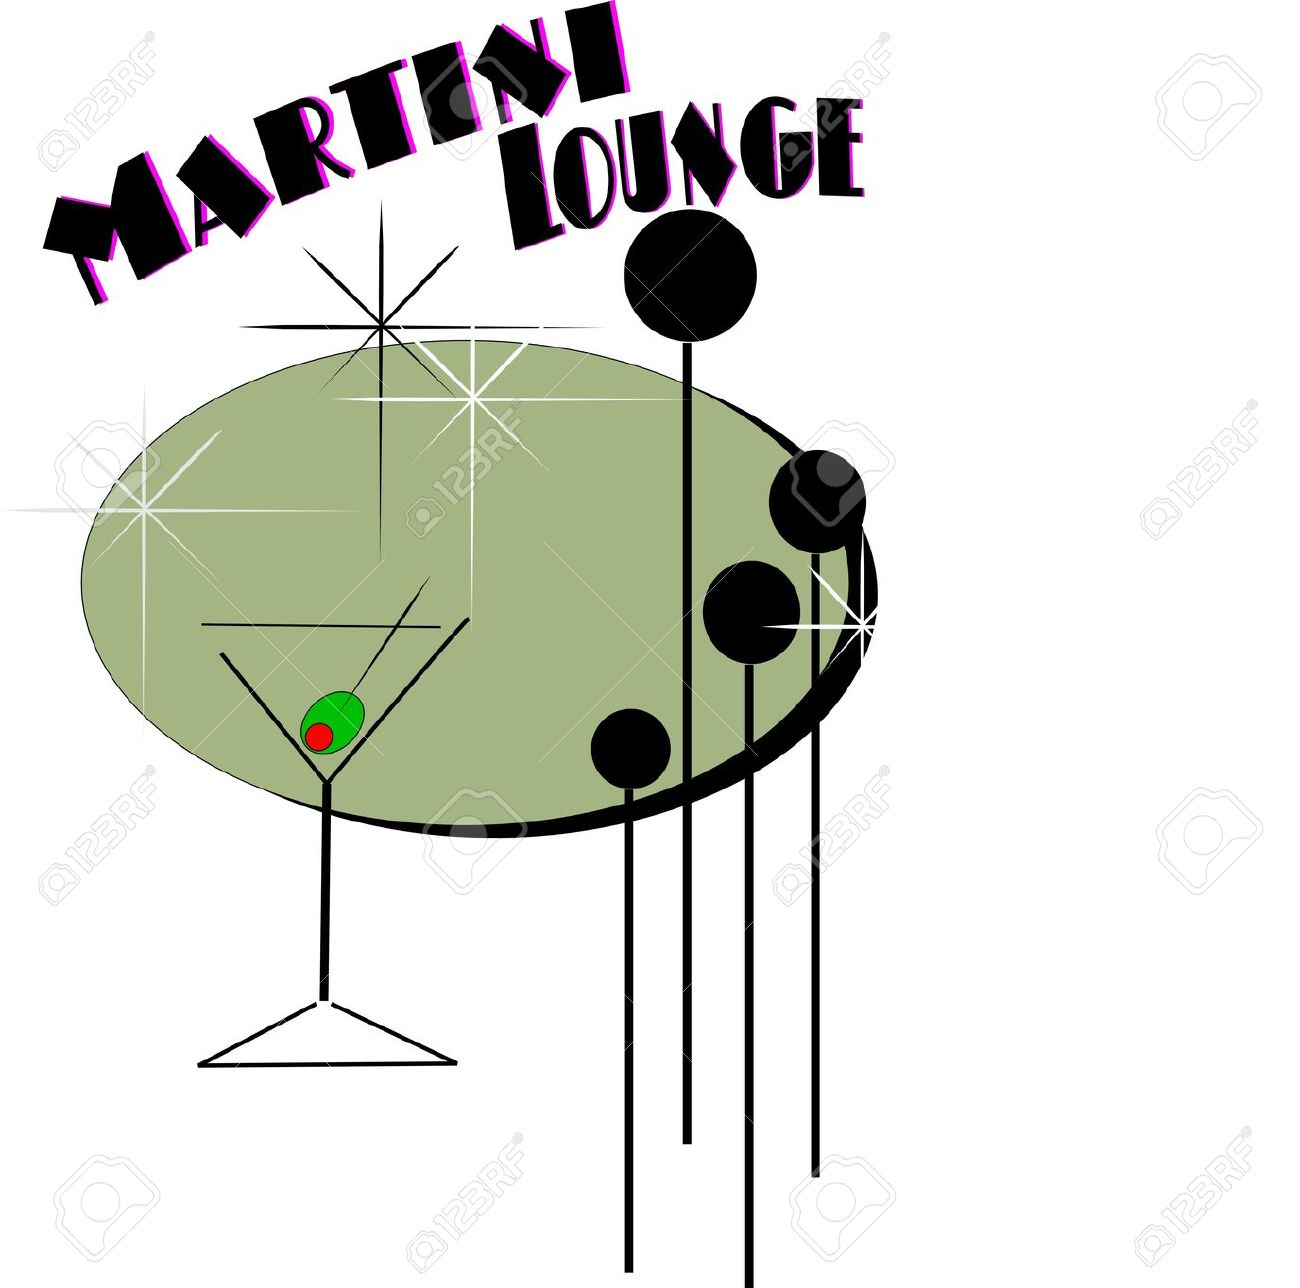 17,099 Martini Glass Stock Vector Illustration And Royalty Free.